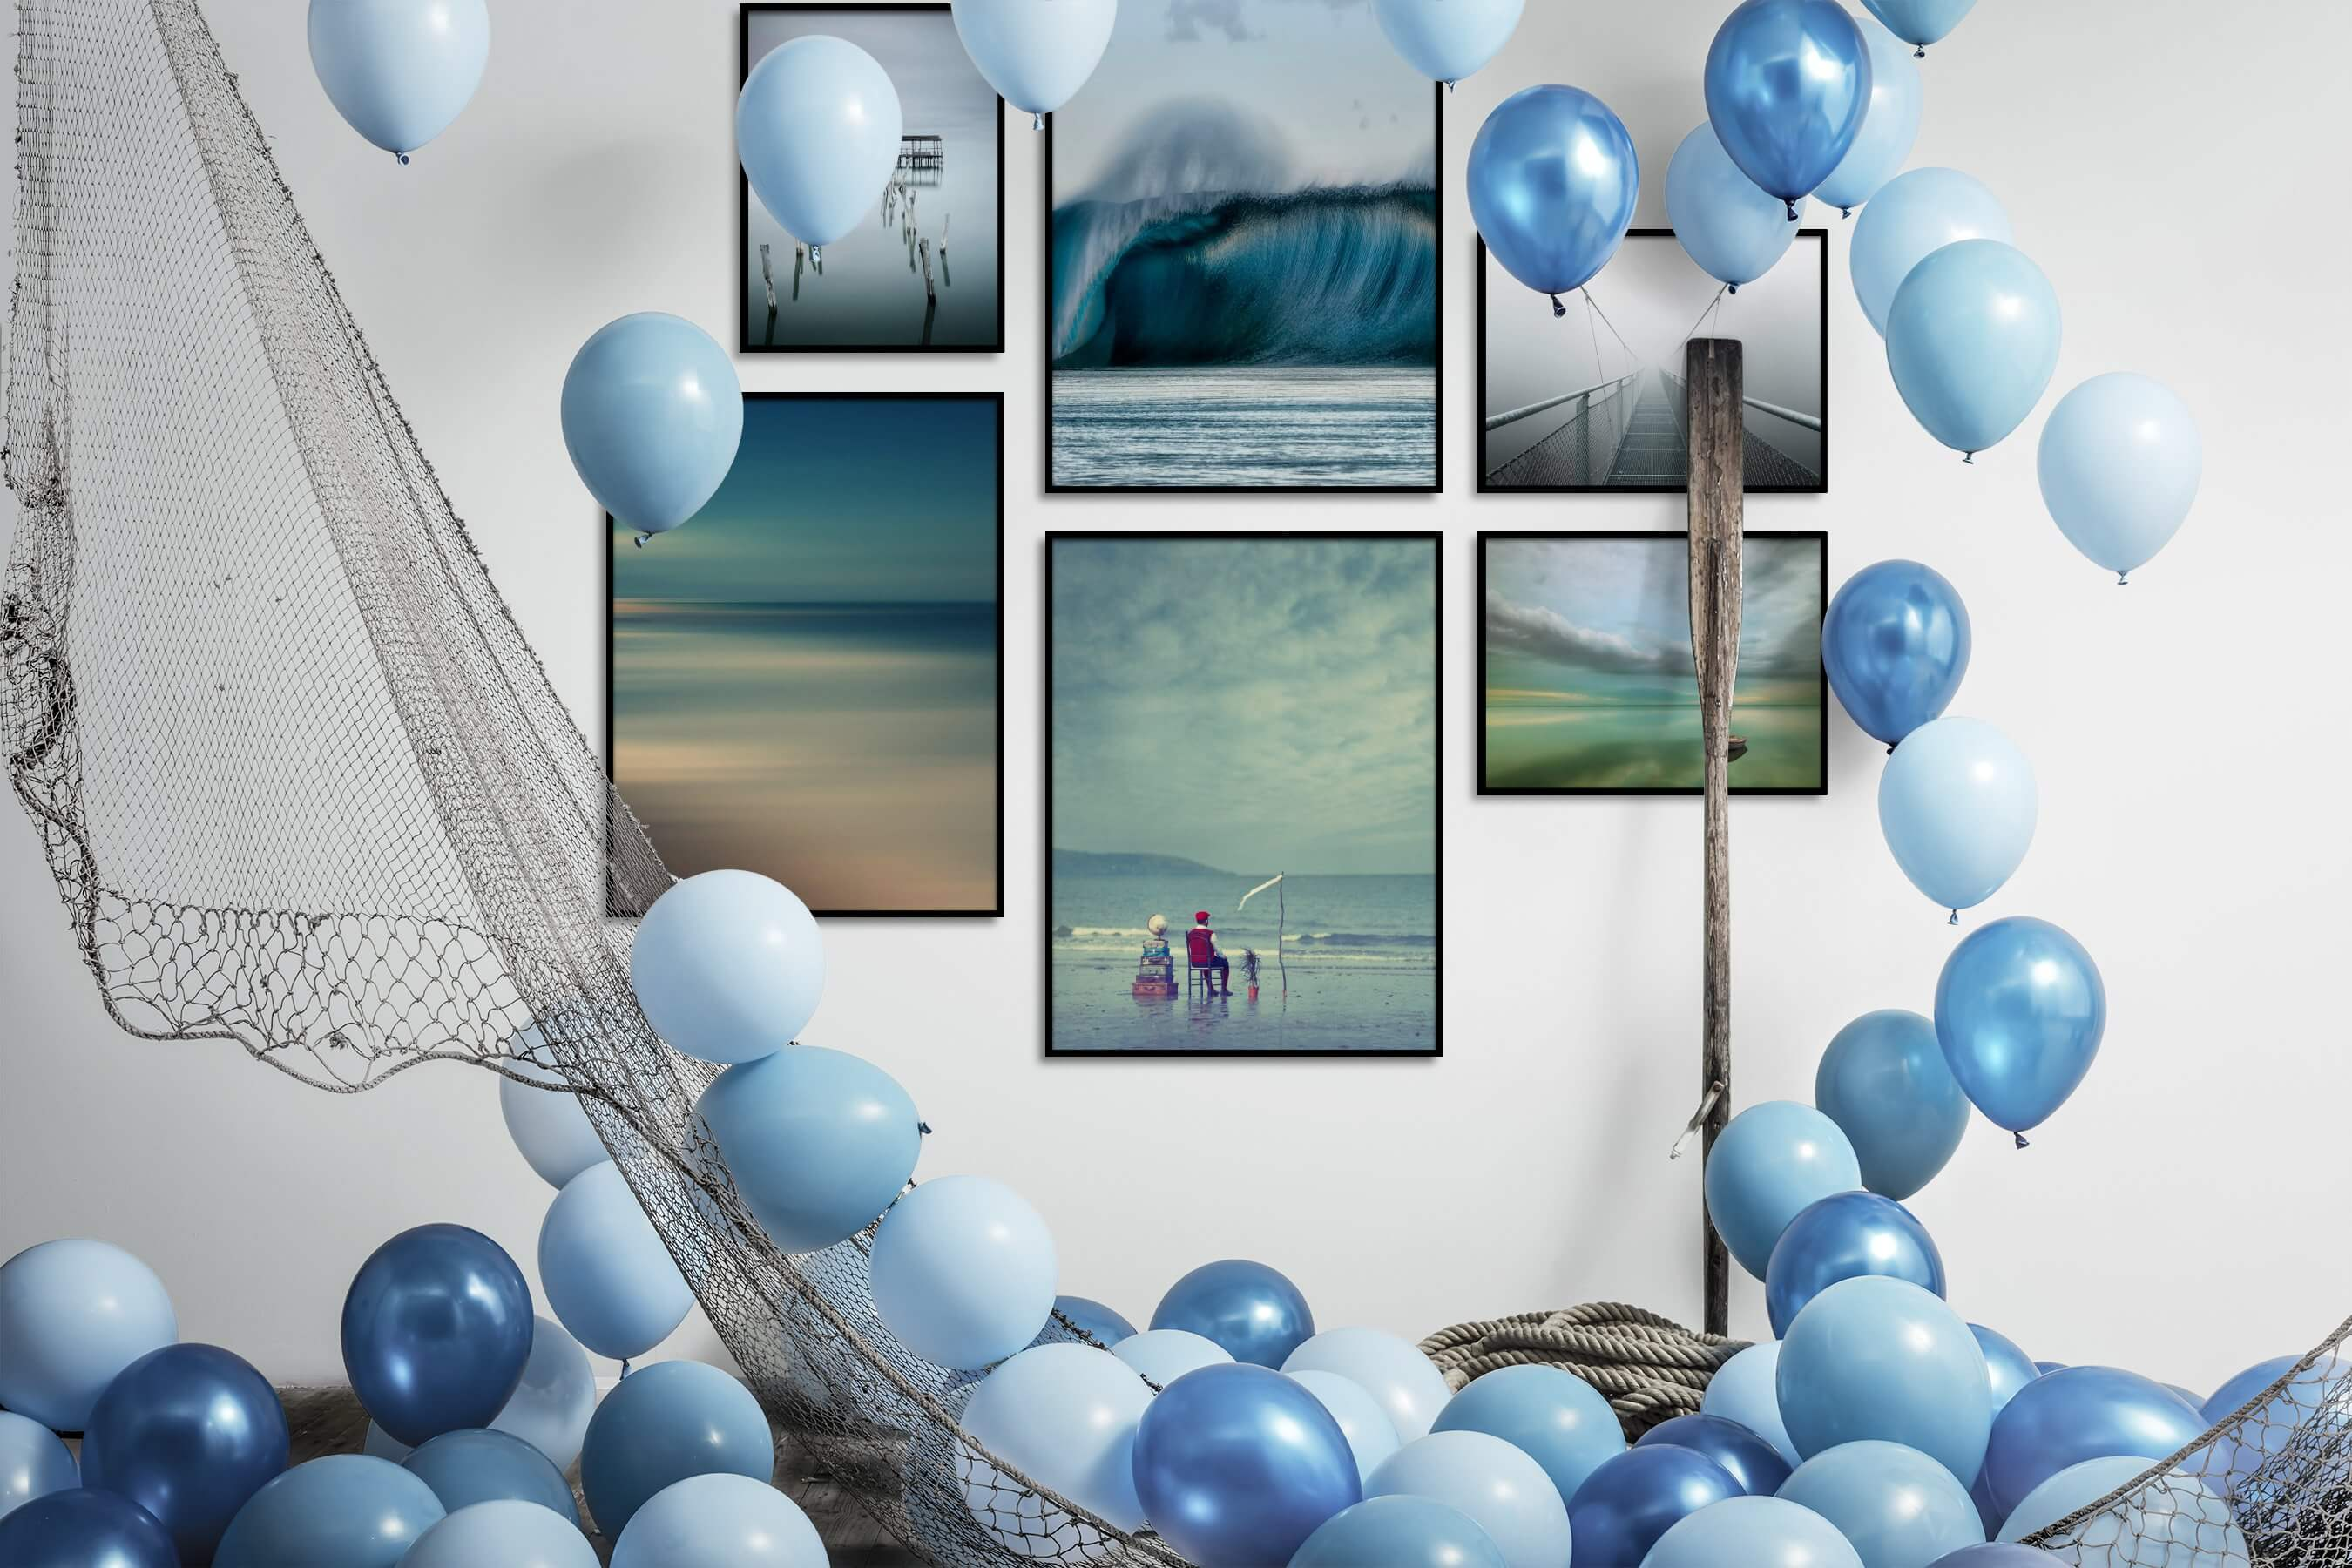 Gallery wall idea with six framed pictures arranged on a wall depicting For the Moderate, Beach & Water, Mindfulness, For the Minimalist, Artsy, and Nature